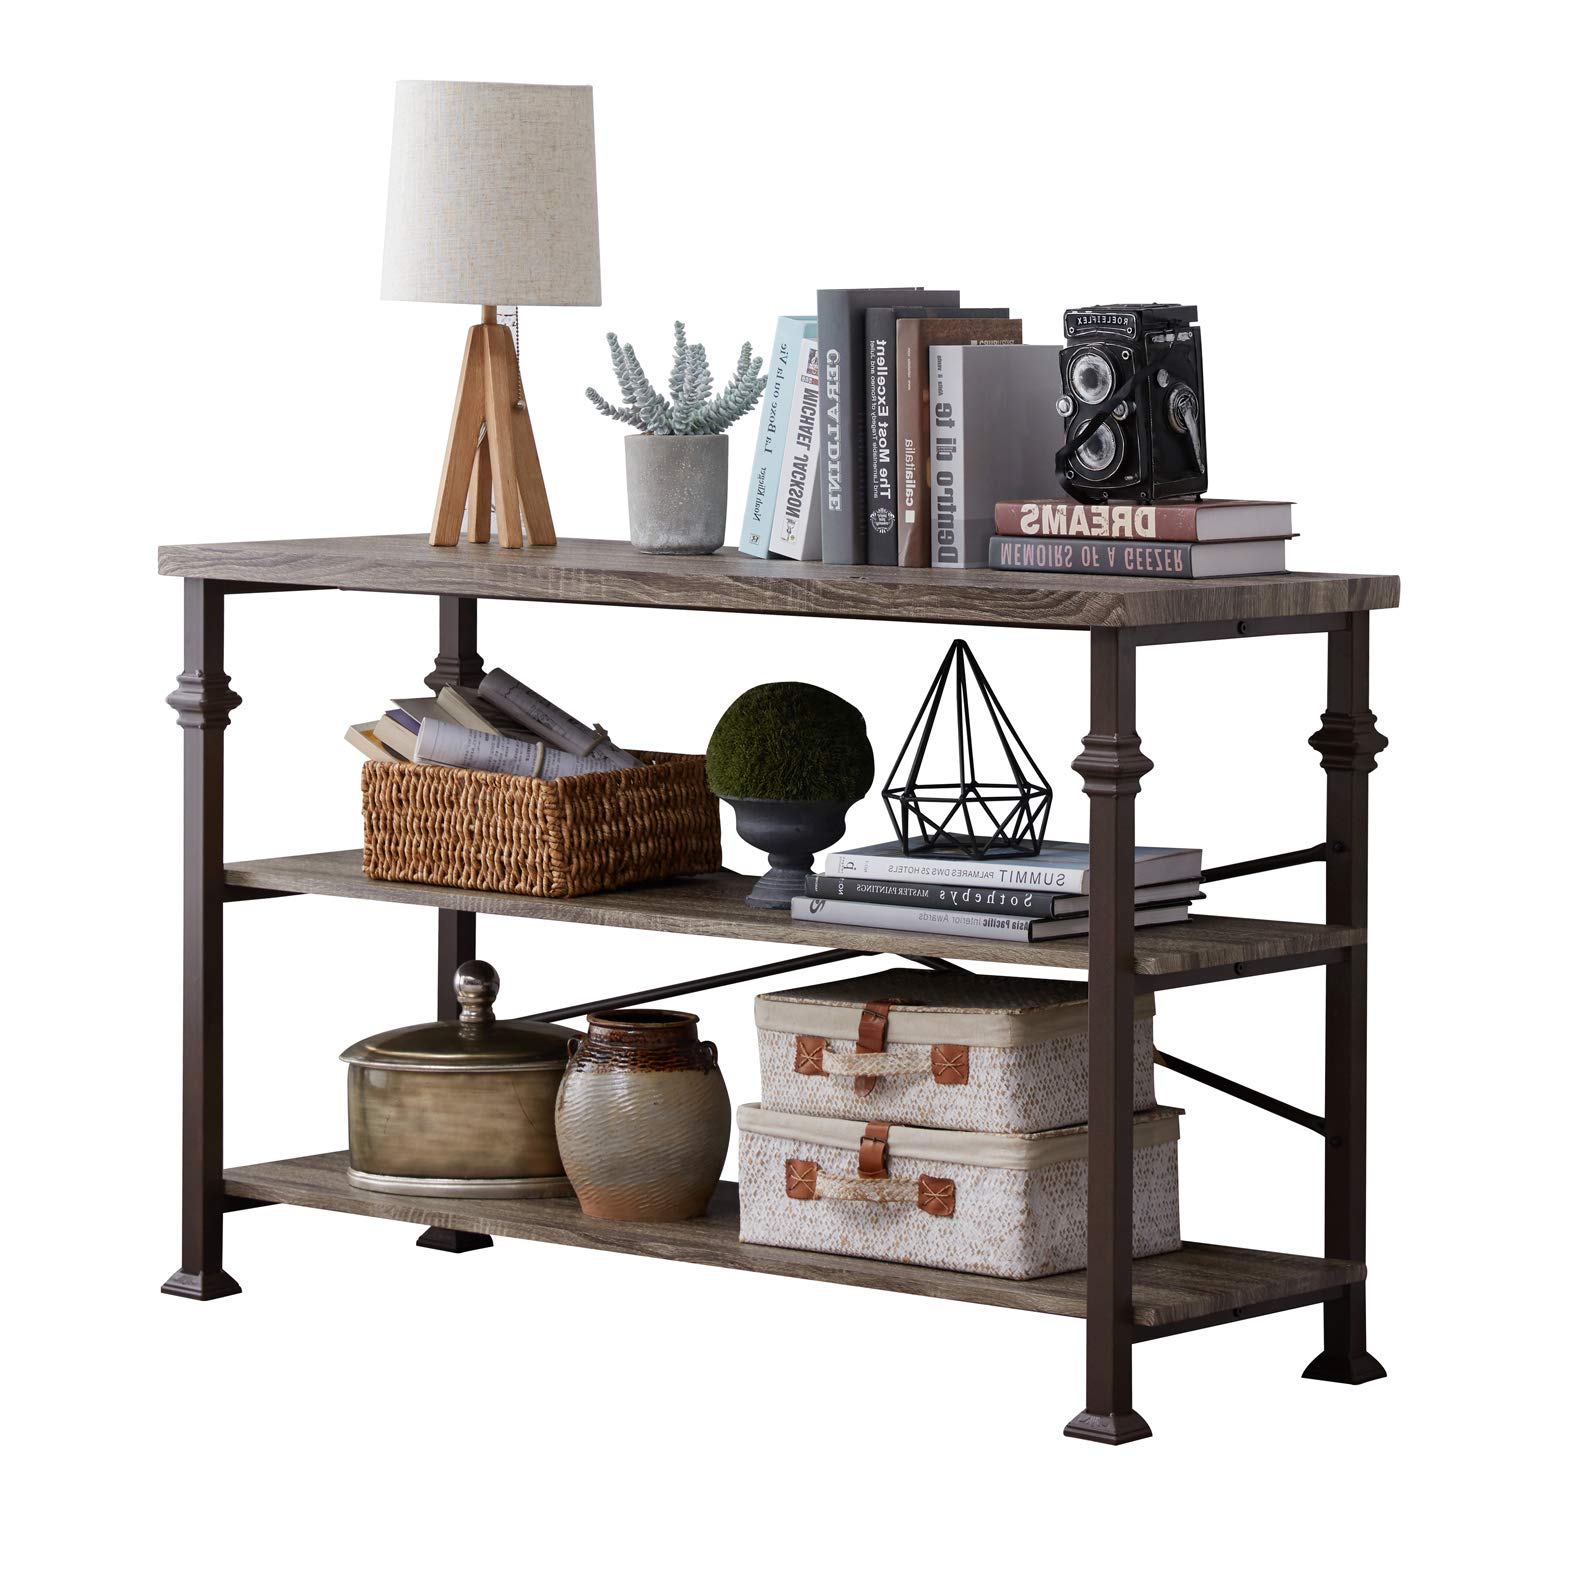 Hombazzar 3 Tier Industrial Rustic Sofa Table, Rectangular Console Hall Entry Table with Storage Shelf for Entryway, Living Room, Hallway, Grey Oak, 47-Inch Long by Hombazaar